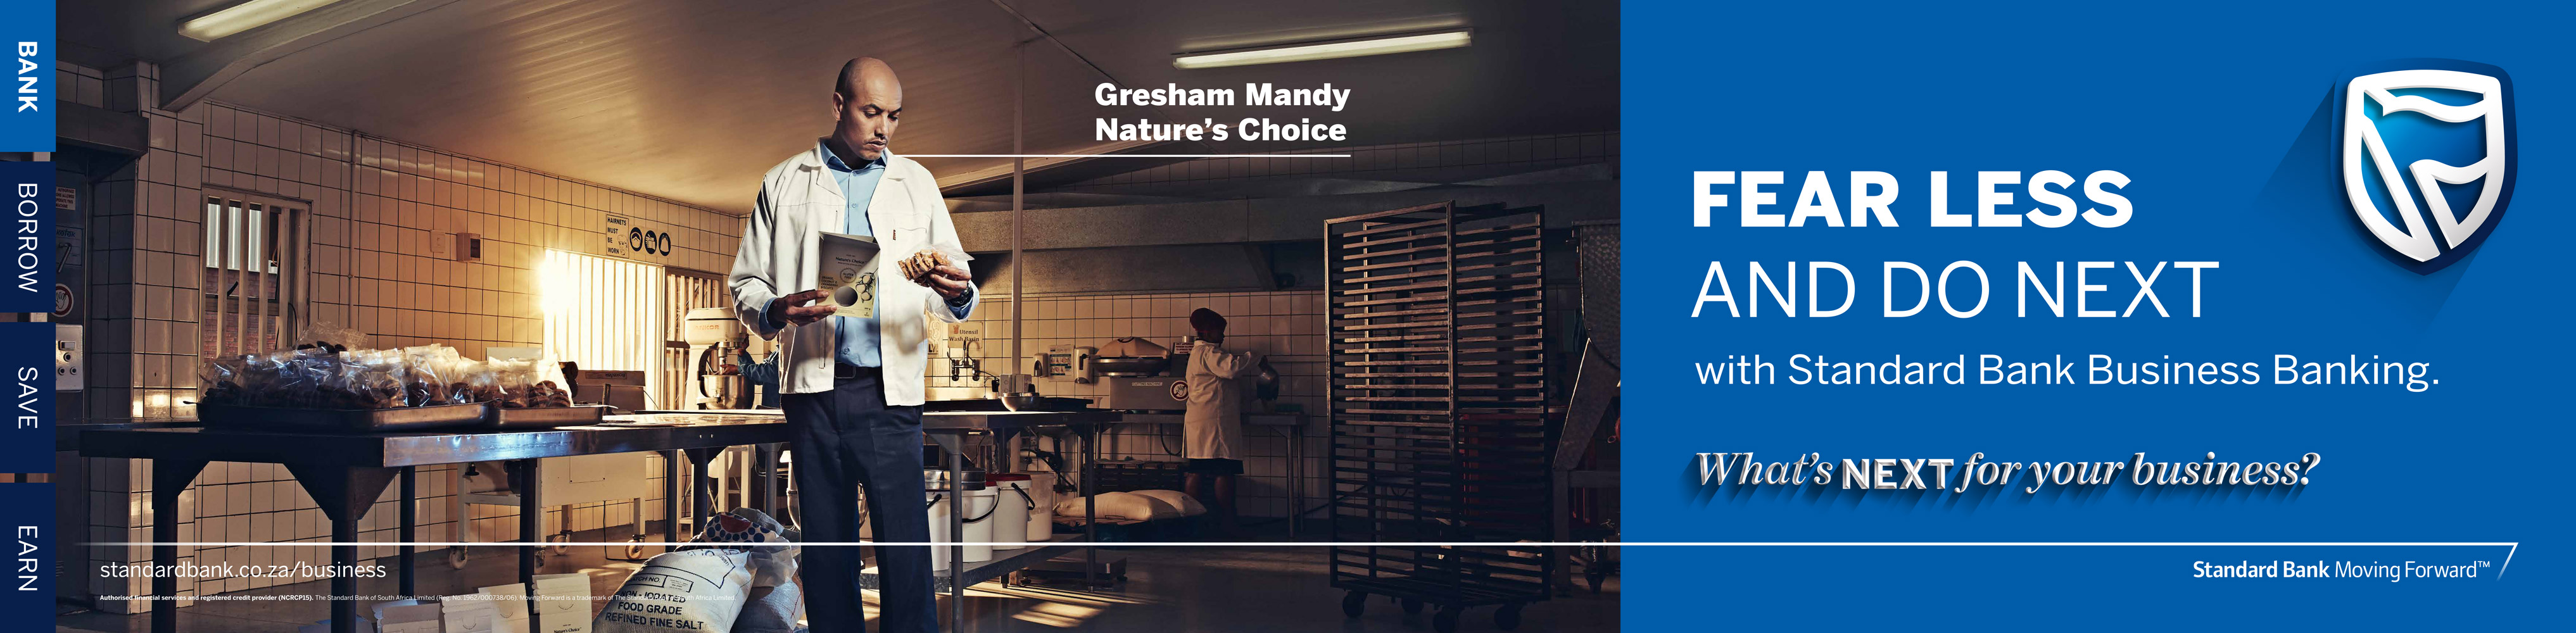 81105-SB-BB-Natures-Choice---440x1790-dv